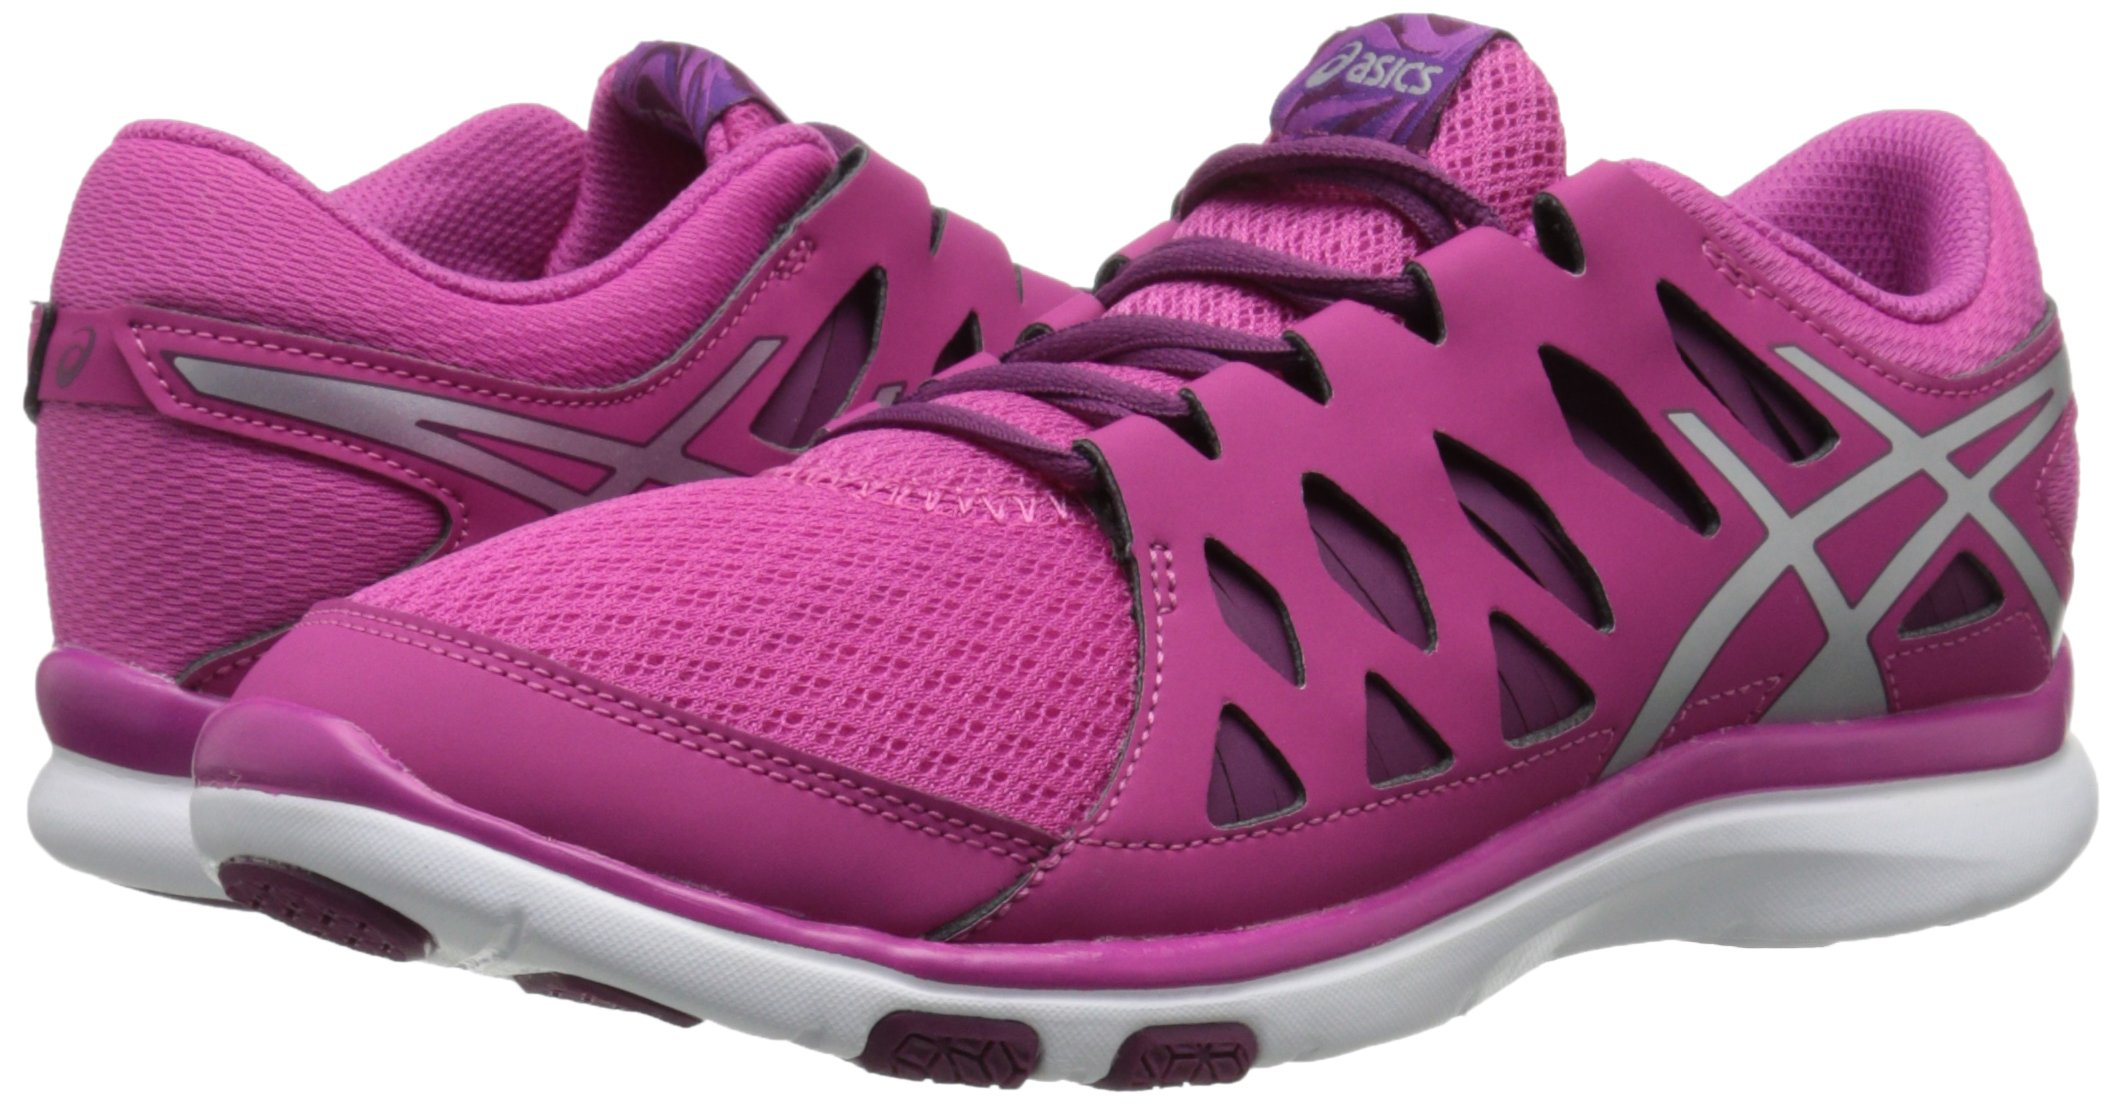 812gMiSN cL - ASICS Women's Gel Fit Tempo 2 Fitness Shoe